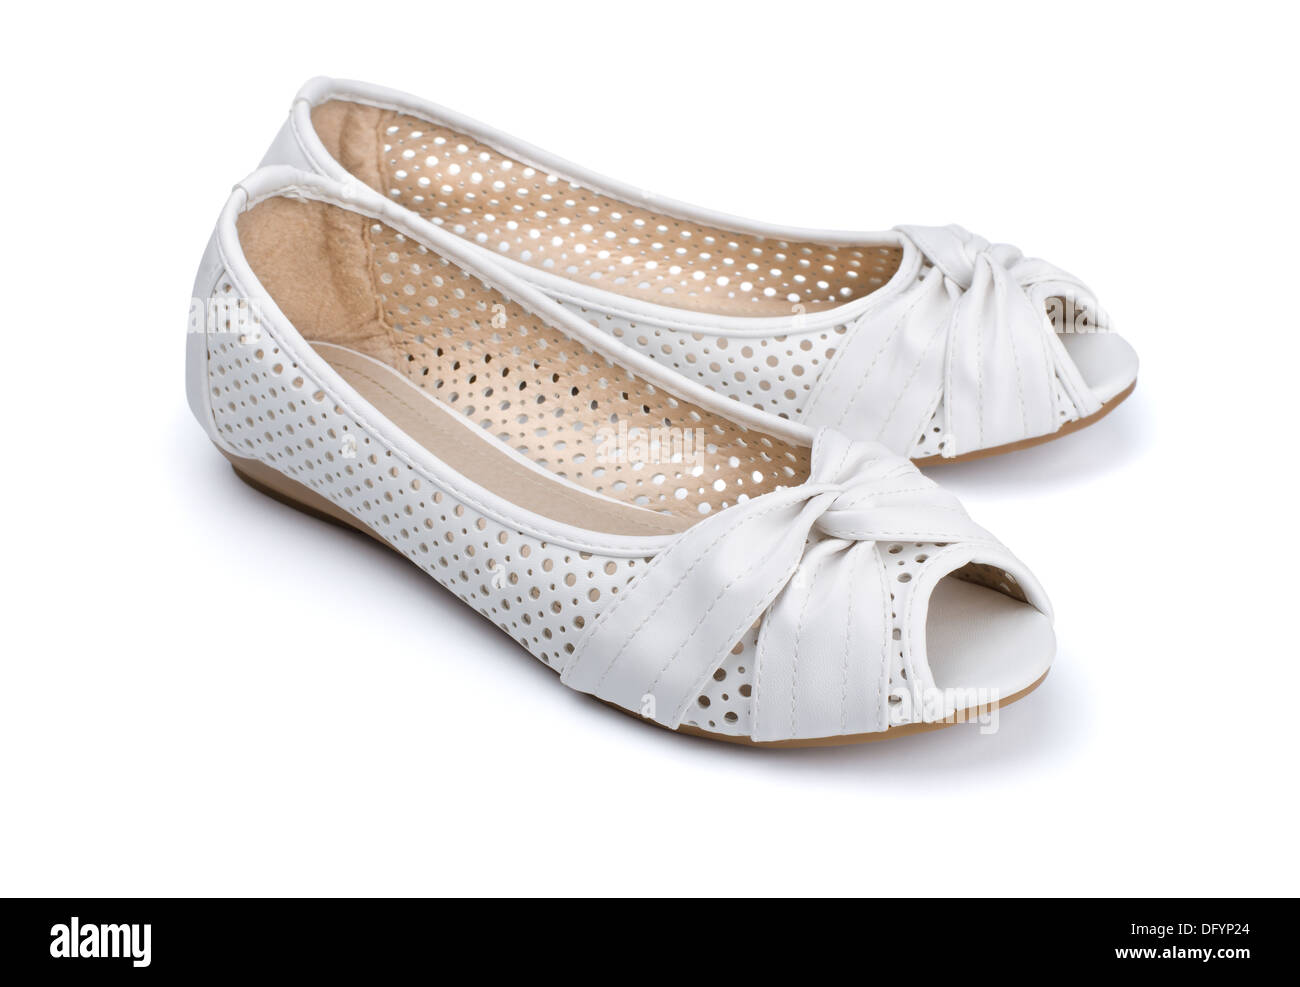 white leather womens shoes isolated